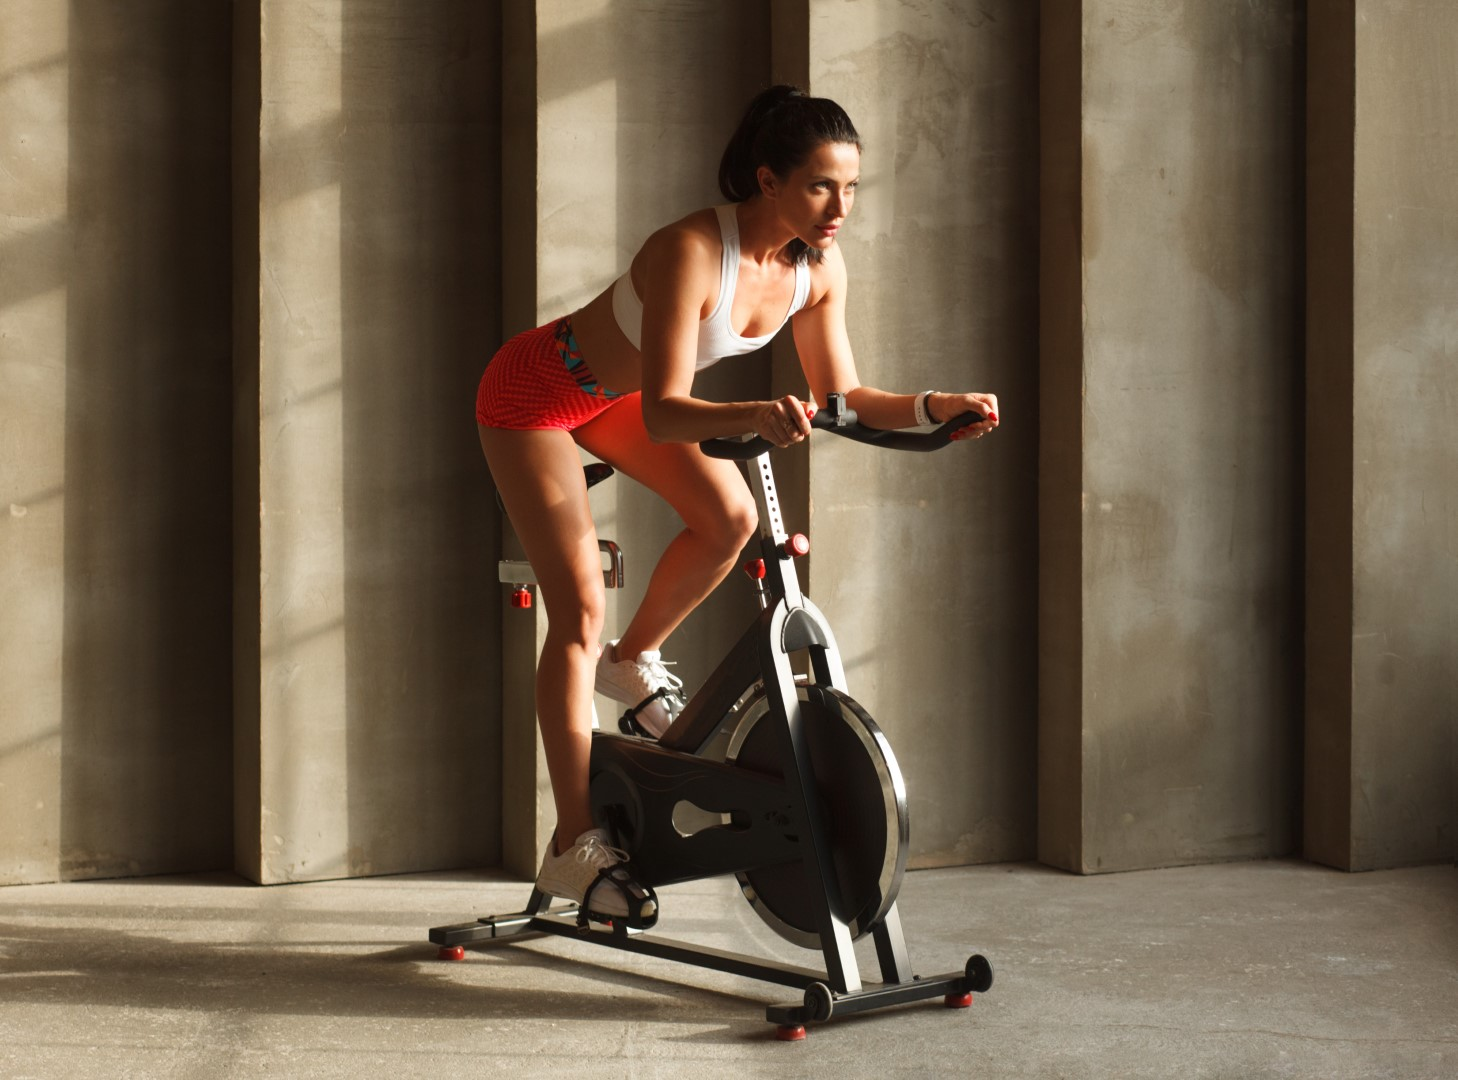 Spinning to lose weight